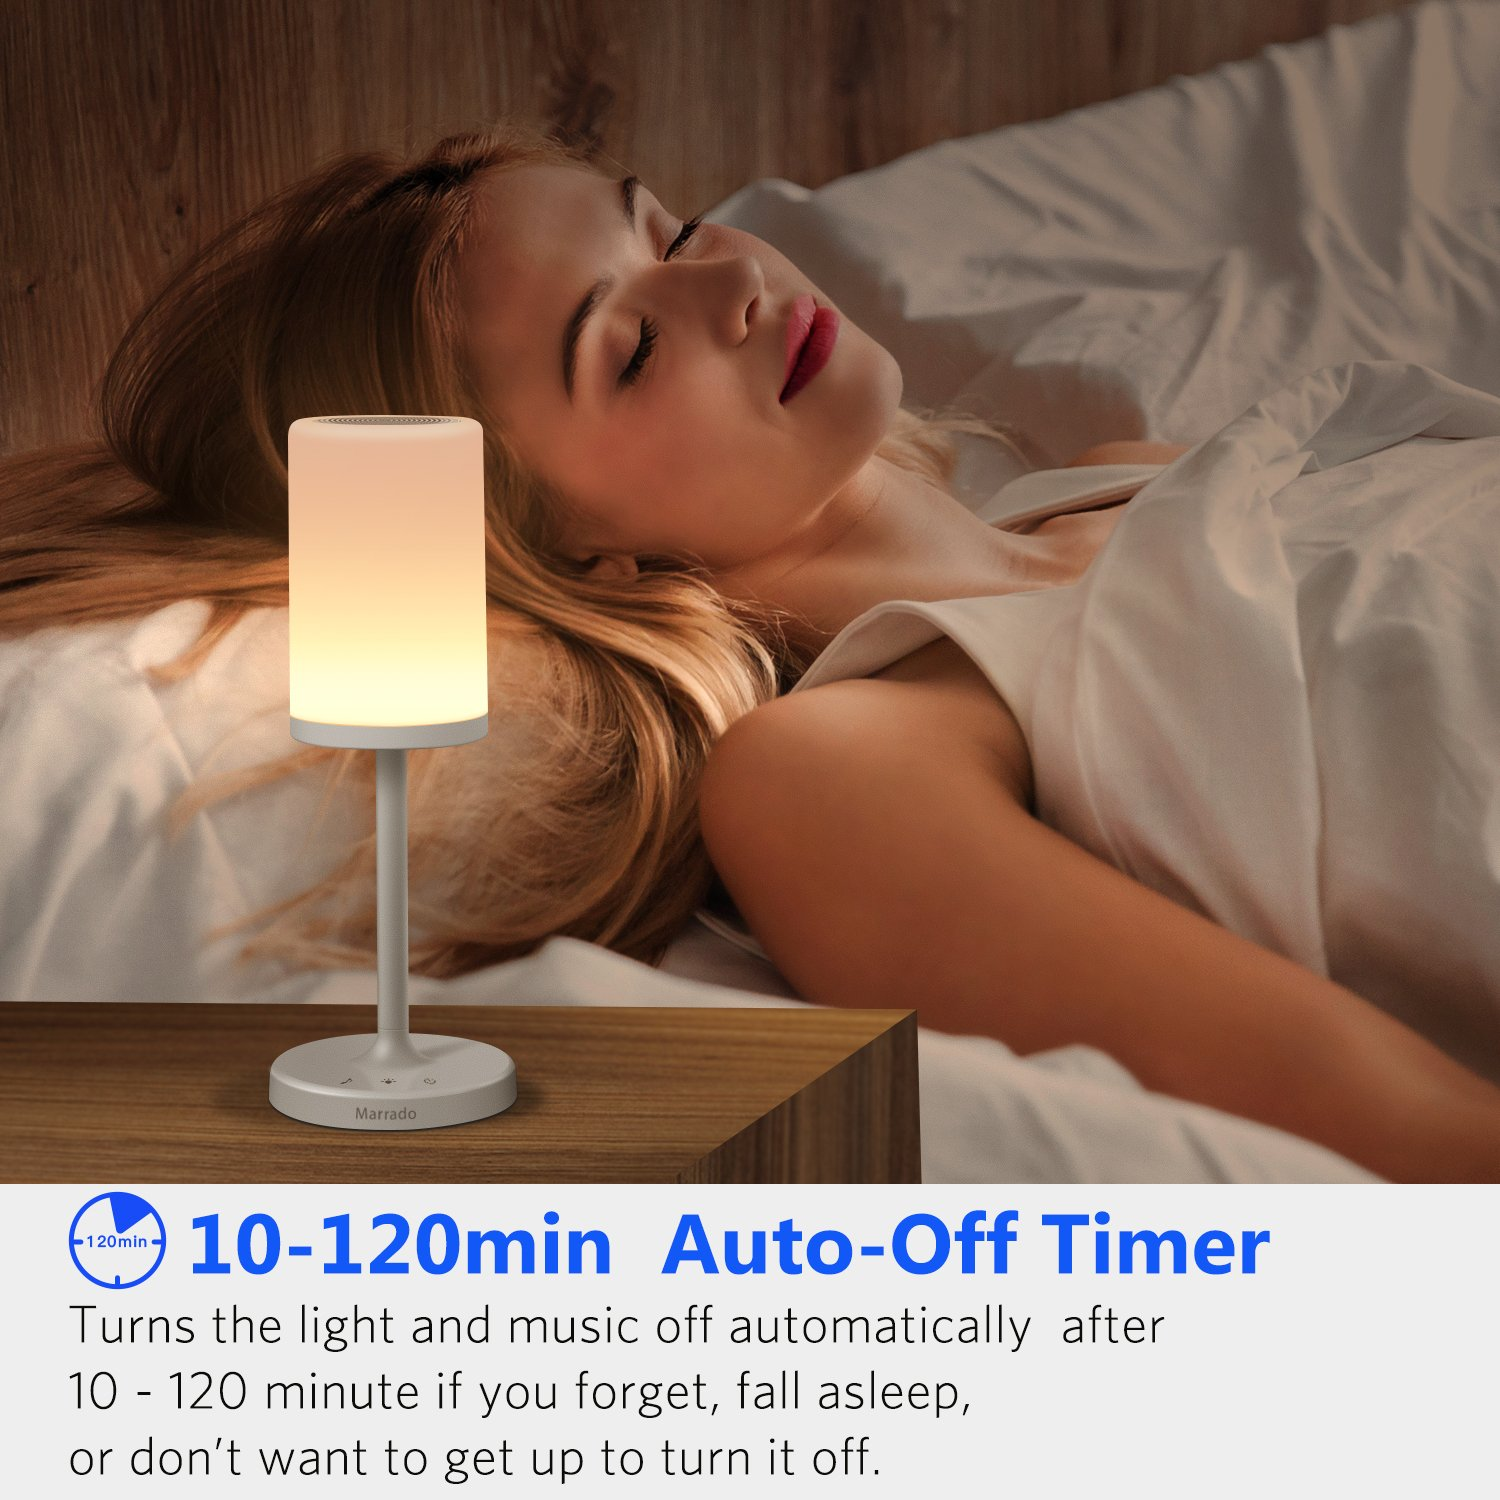 Marrado Bluetooth Speakers + Bedside Lamp, Night Light, Smart Touch Control Table Lamp for Bedroom Living Room, Portable Rechargeable LED Desk Lamp, Dimmable Warm White & Color Changing by Marrado (Image #5)